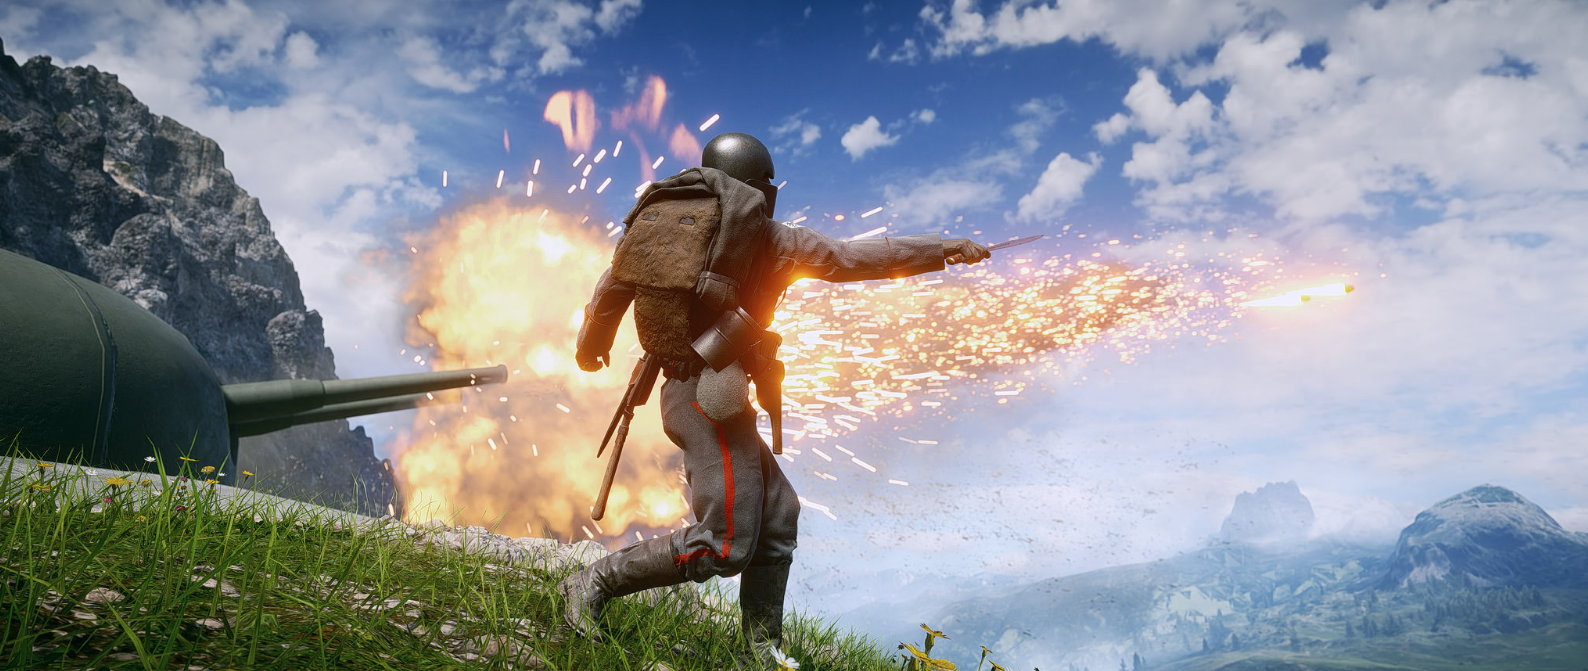 battlefield1screenshot23